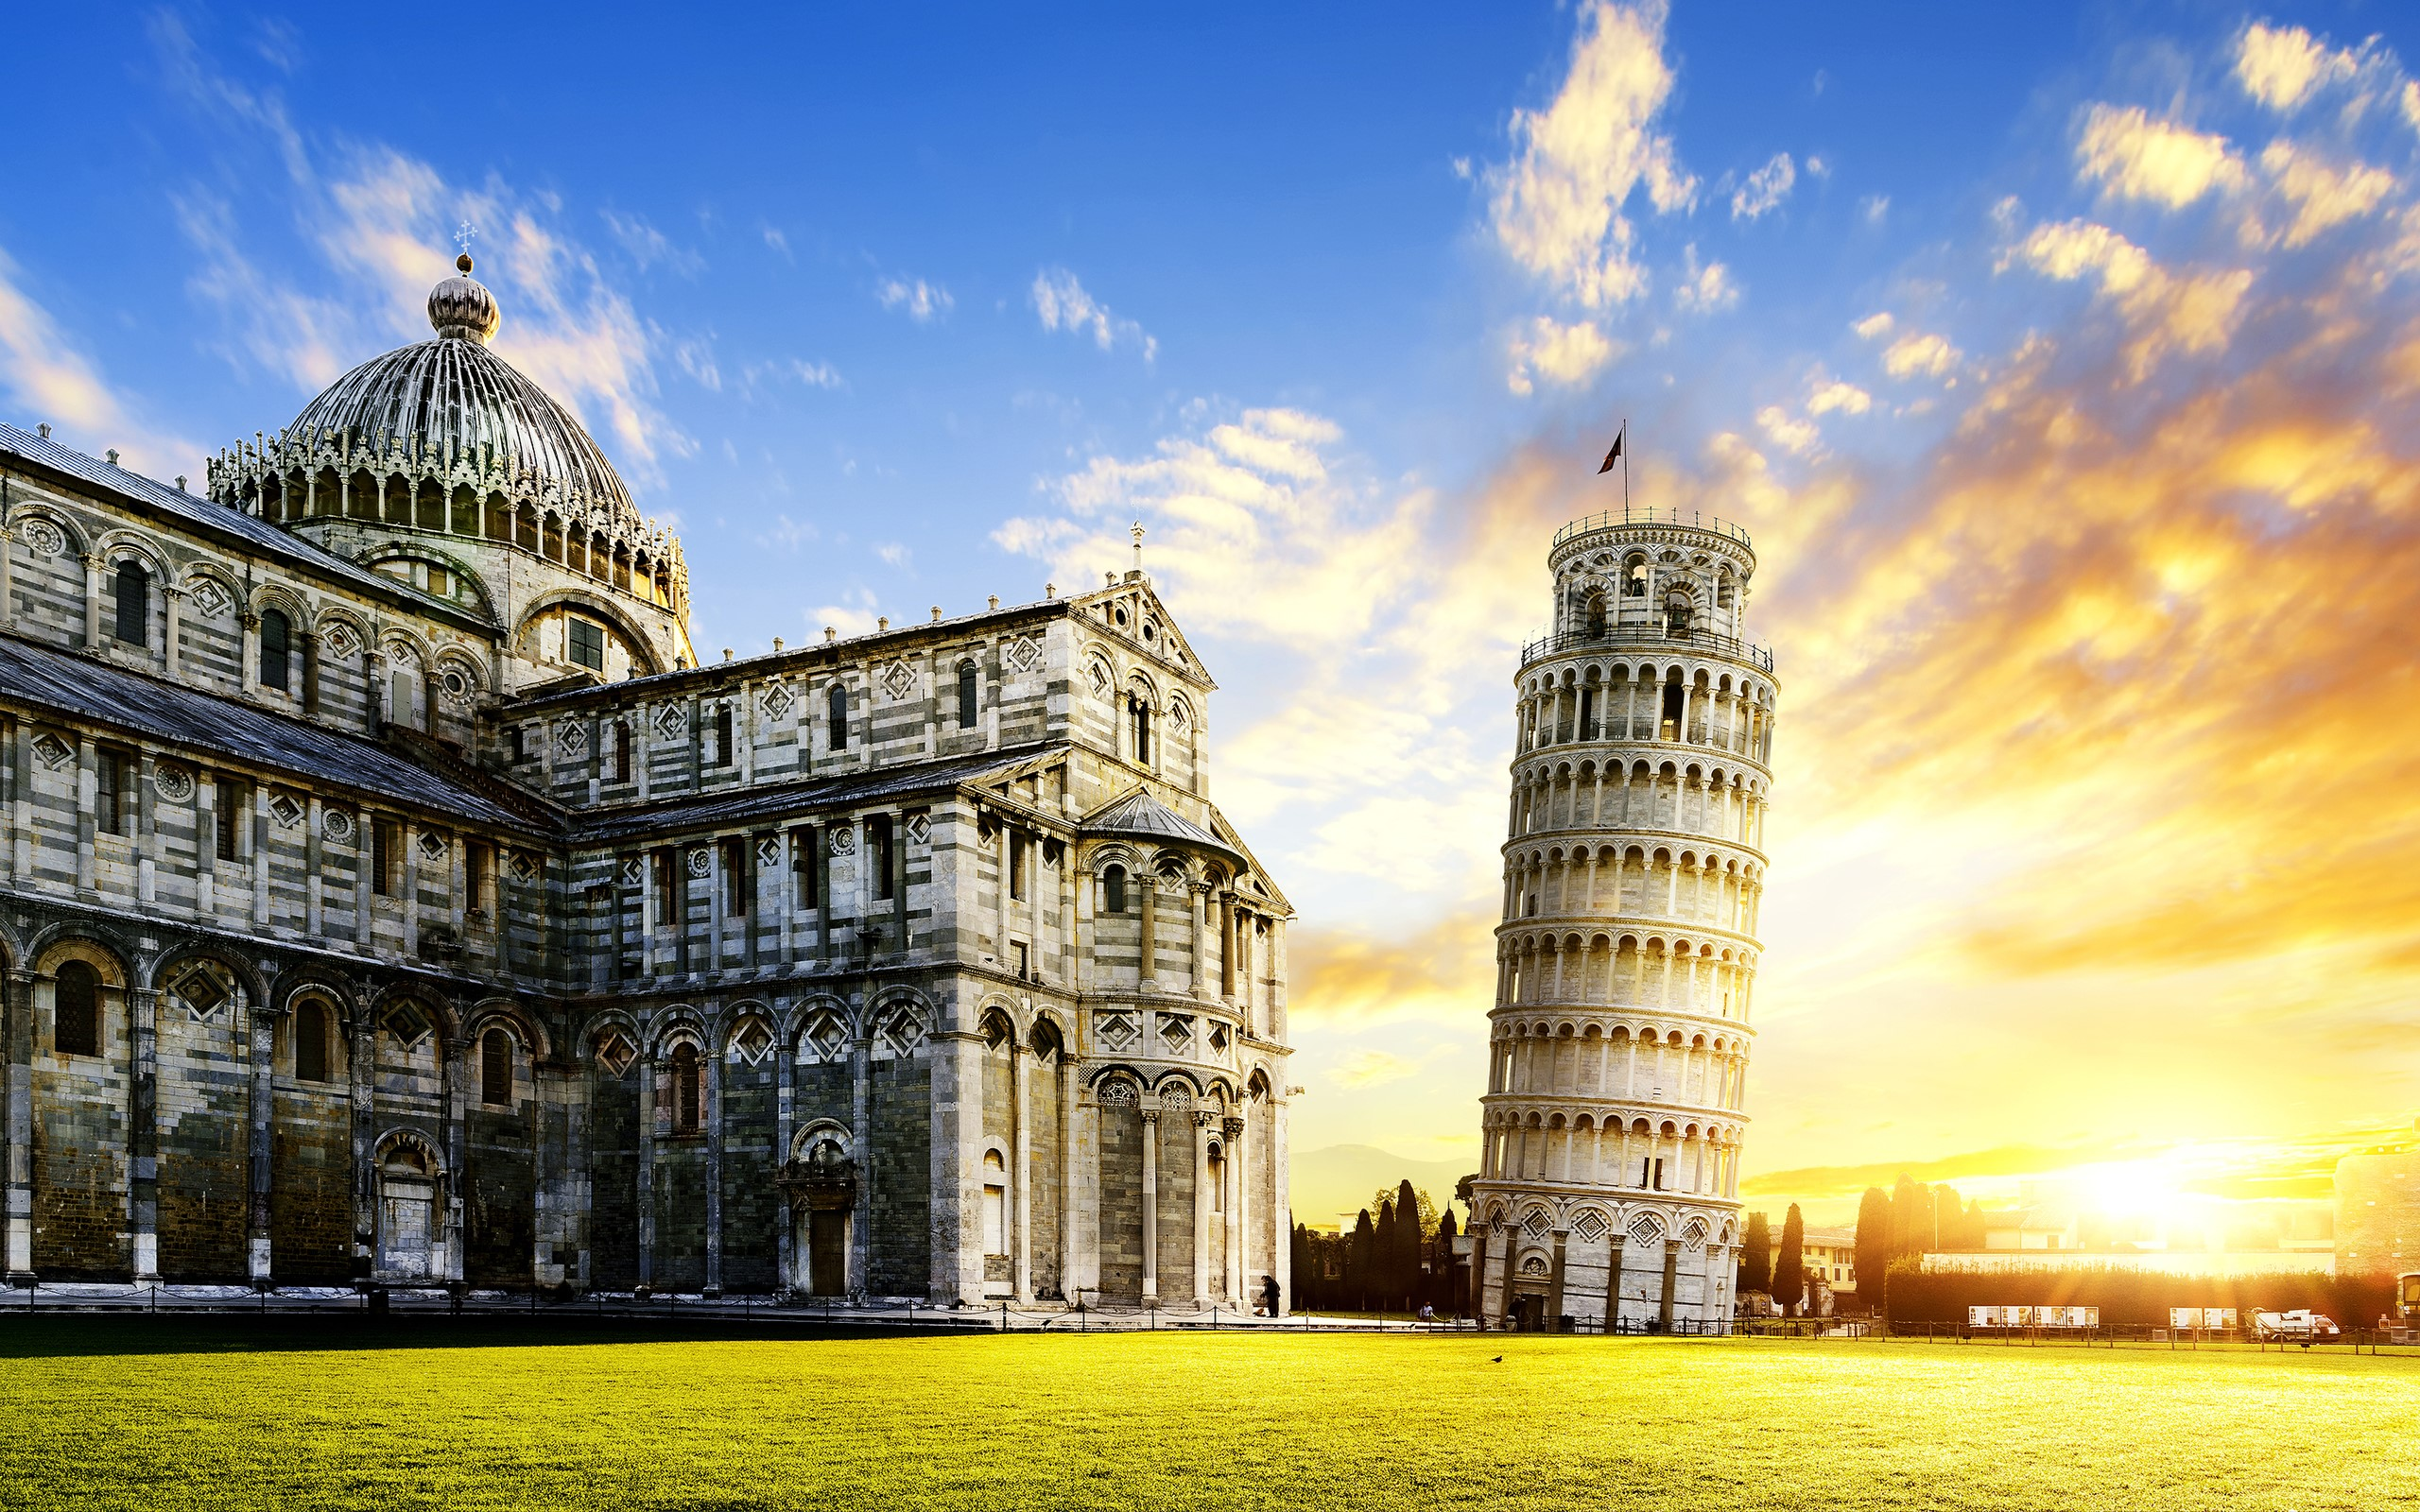 Leaning Tower of Pisa in Italy Desktop Wallpapers HD Wallpapers 2560x1600